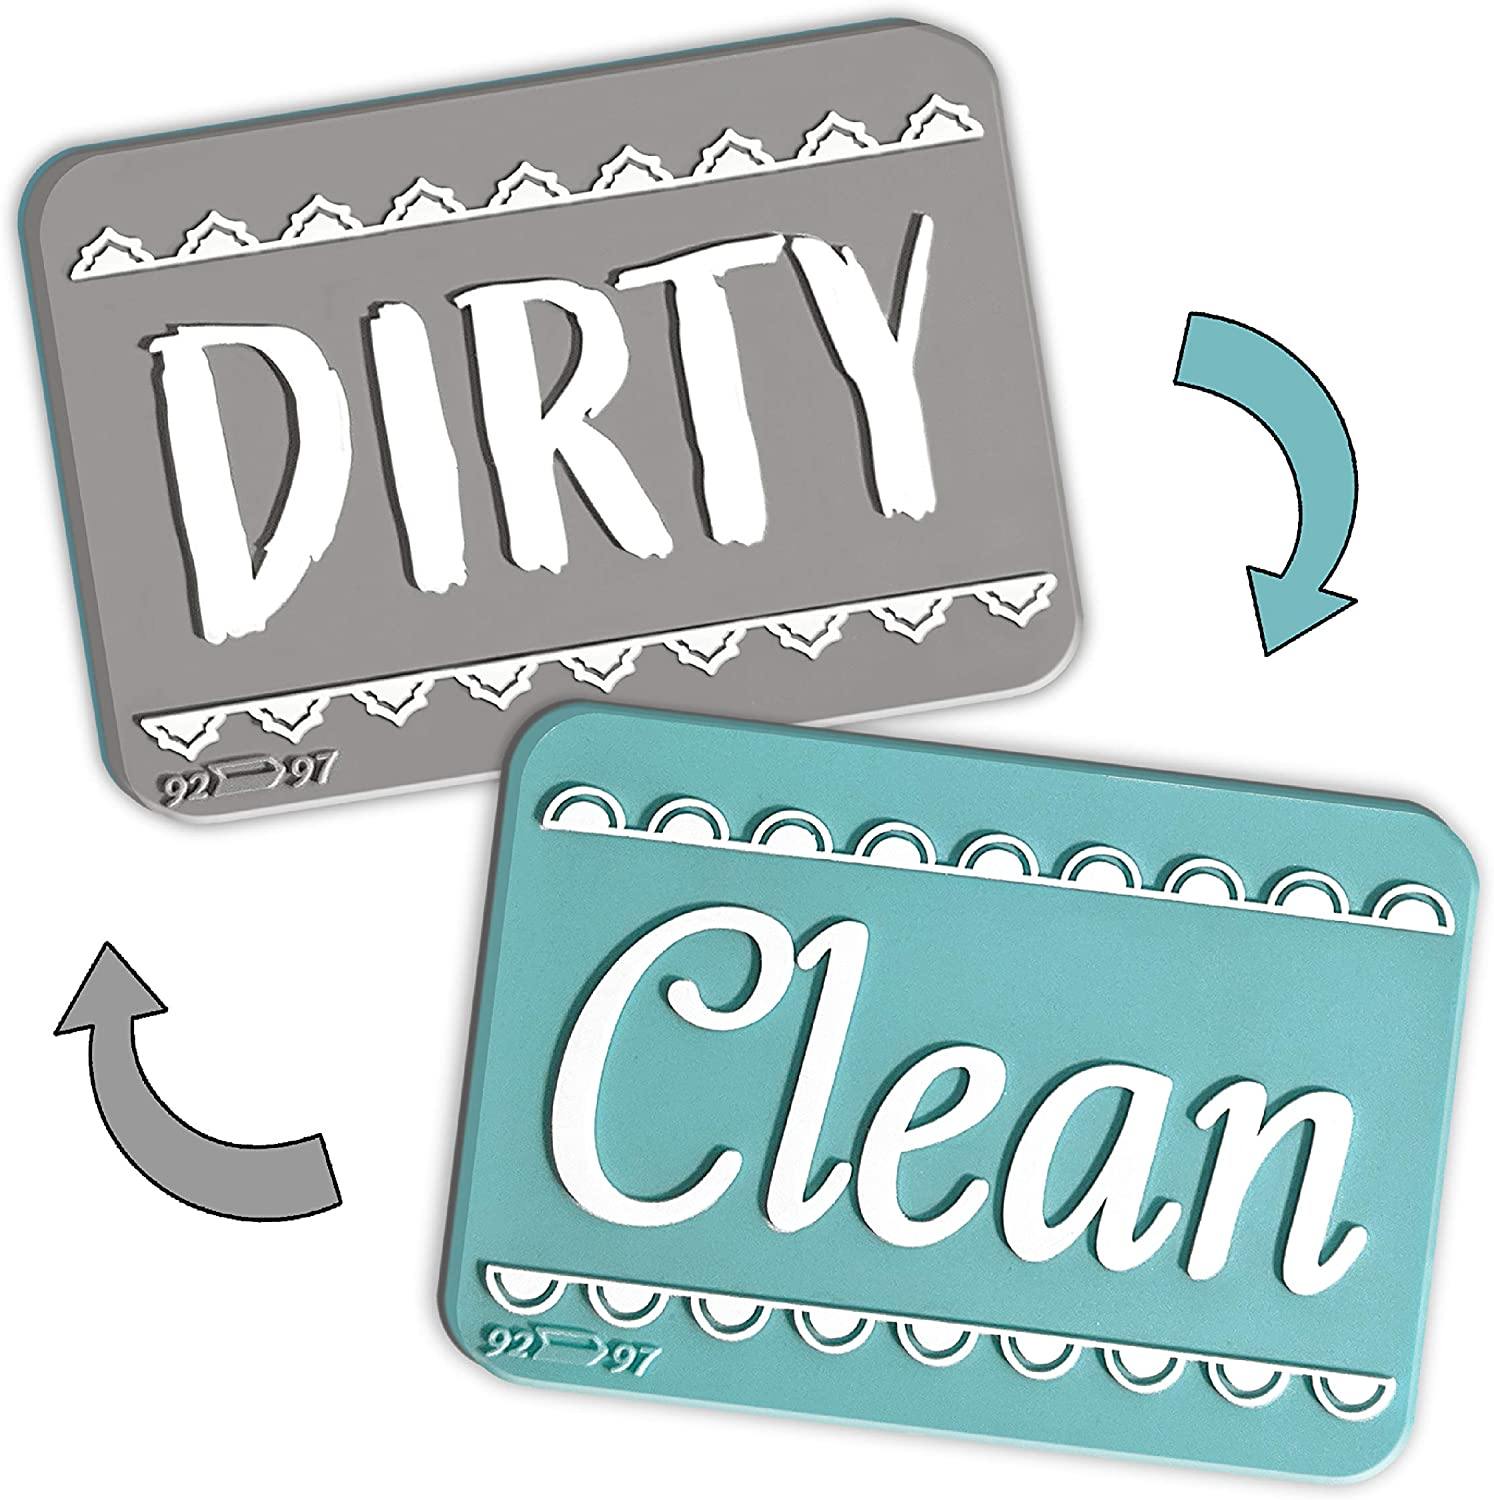 Brothers Bench Aquamarine Silver Clean Dirty Dishwasher Magnet Sign, Double Sided Dish Washer Indicator, Strong Non Surface Scratching Universal Magnet – Kitchen Safe, Waterproof, and Reversible